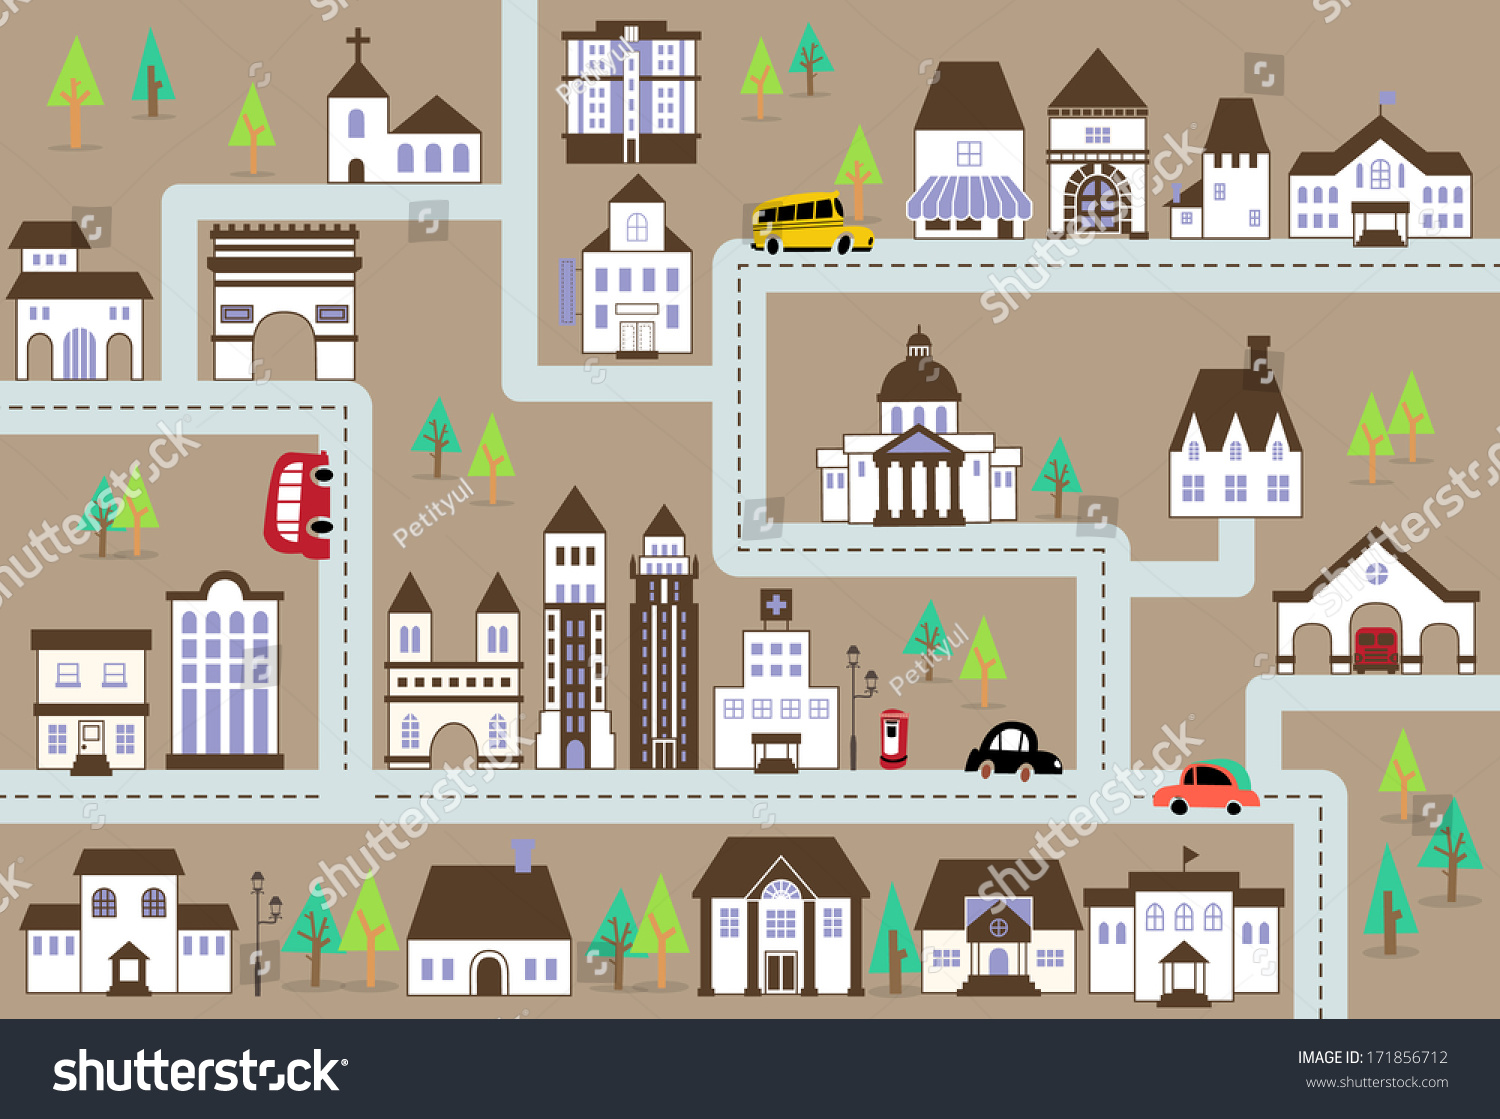 City Map Illustration With A Variety Of Buildings Grocery Shopschoolhospital